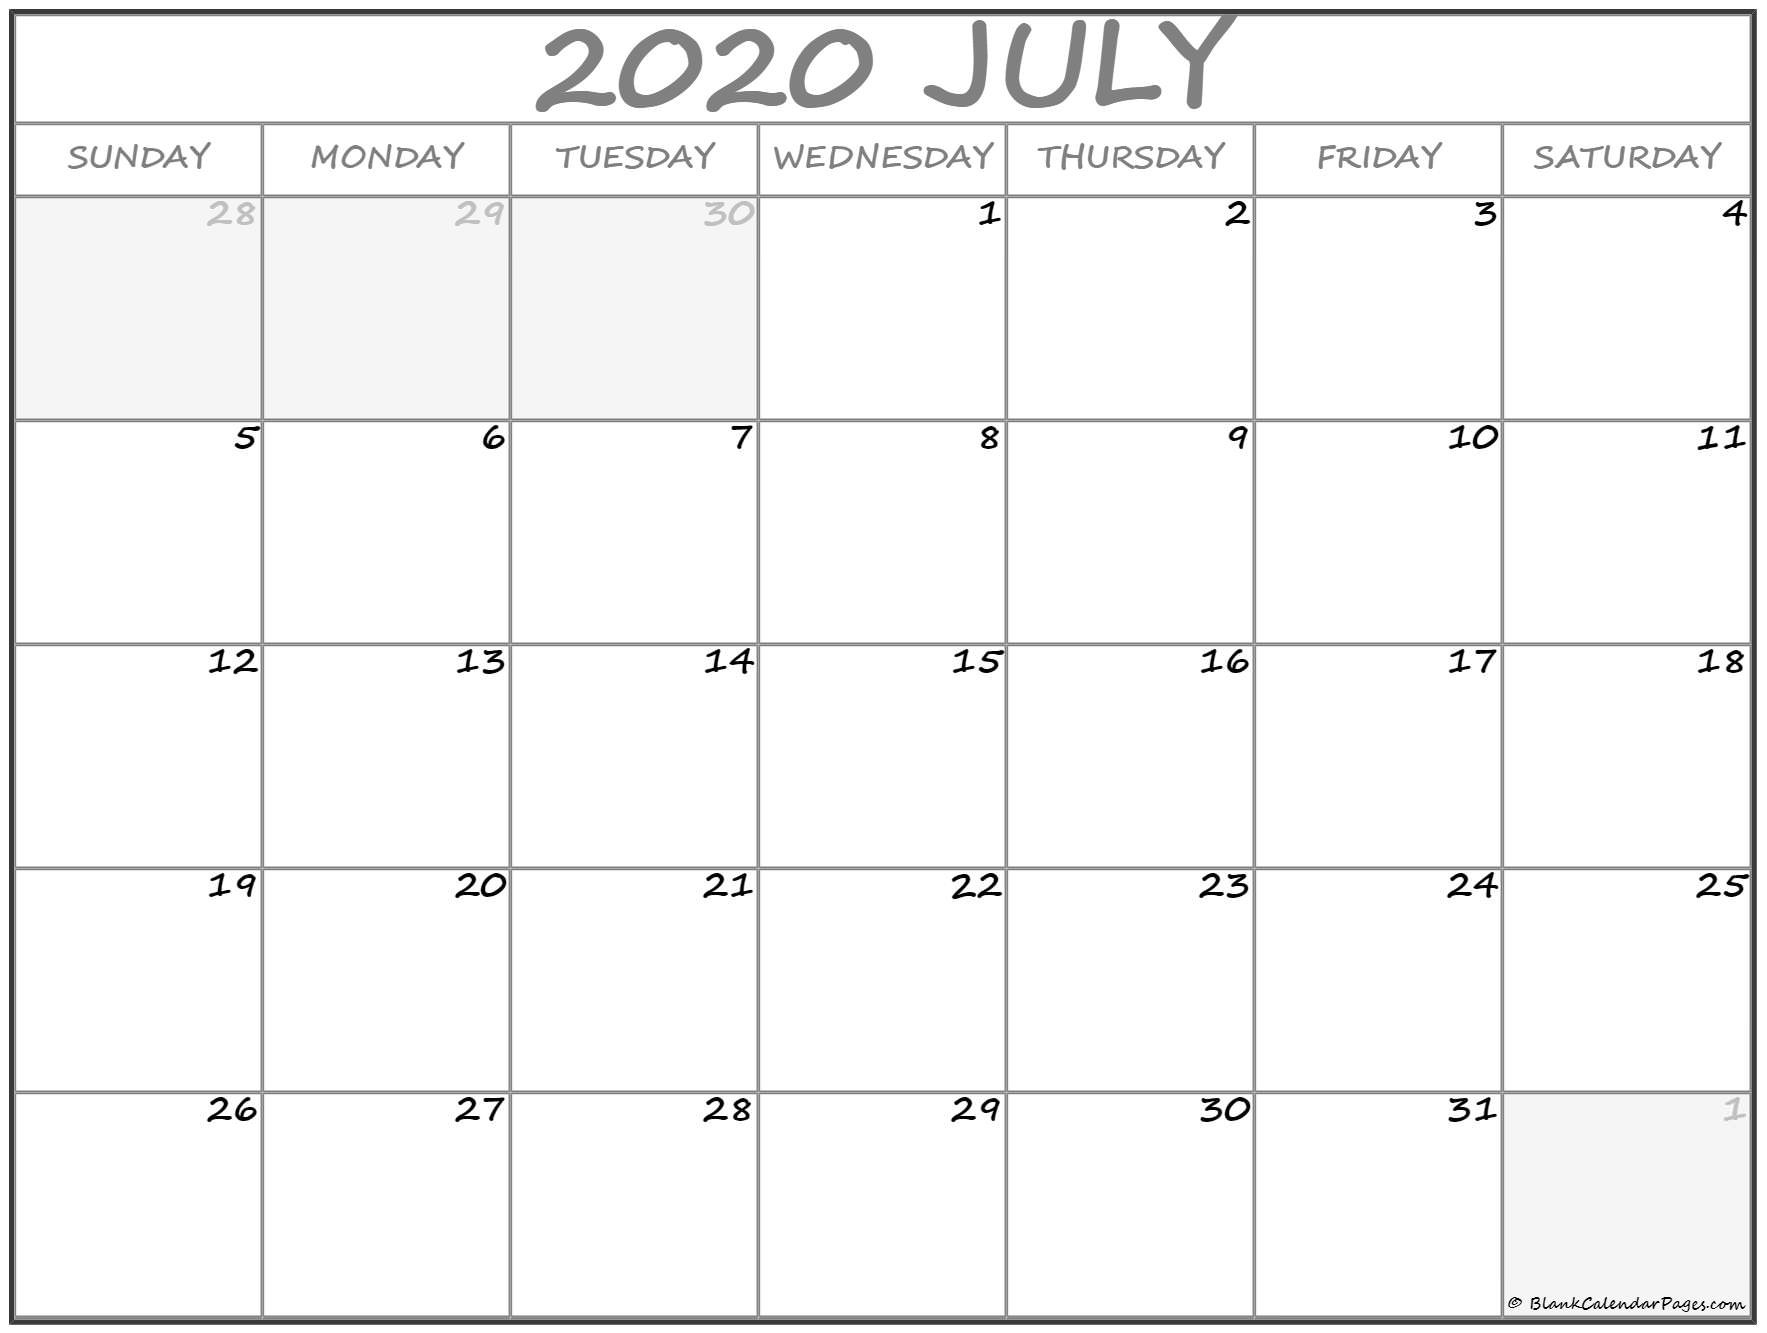 July 2020 Calendar | Free Printable Monthly Calendars-5 Day Calander Template July 2020